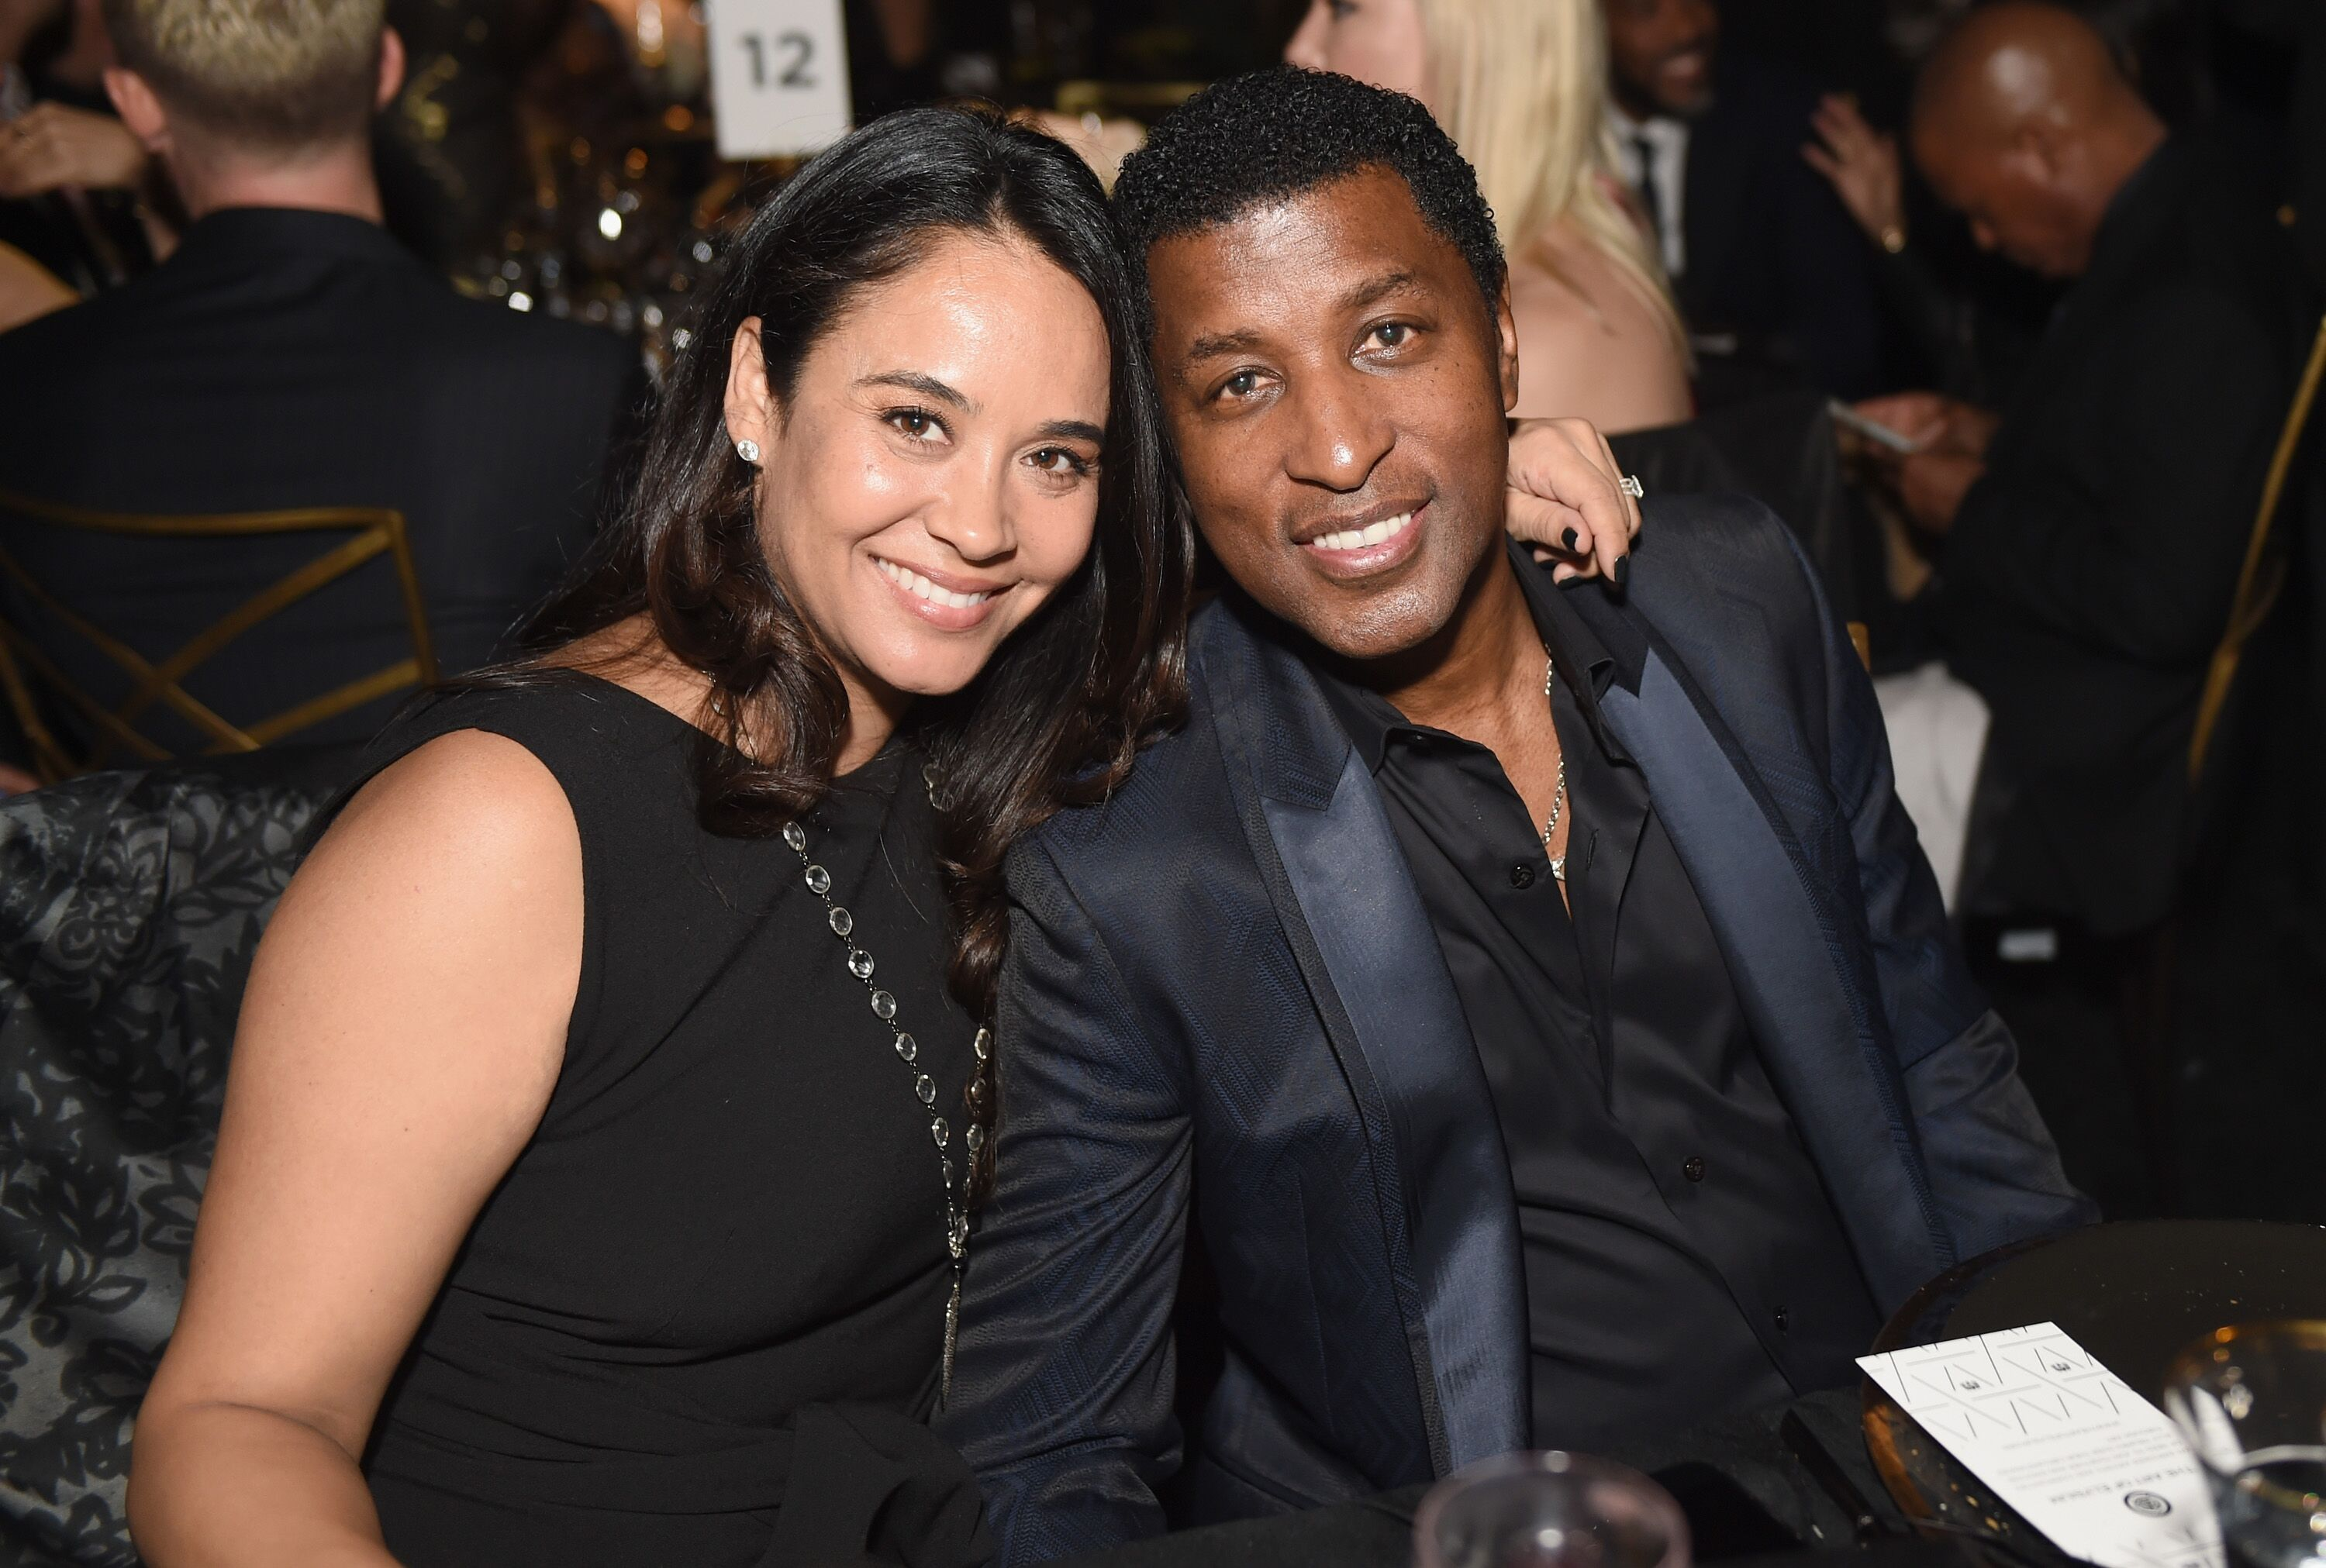 Kenneth 'Babyface' Edmonds and wife Nicole Pantenburg at the 10th Anniversary at Red Studios in 2017 in Los Angeles | Source: Getty Images